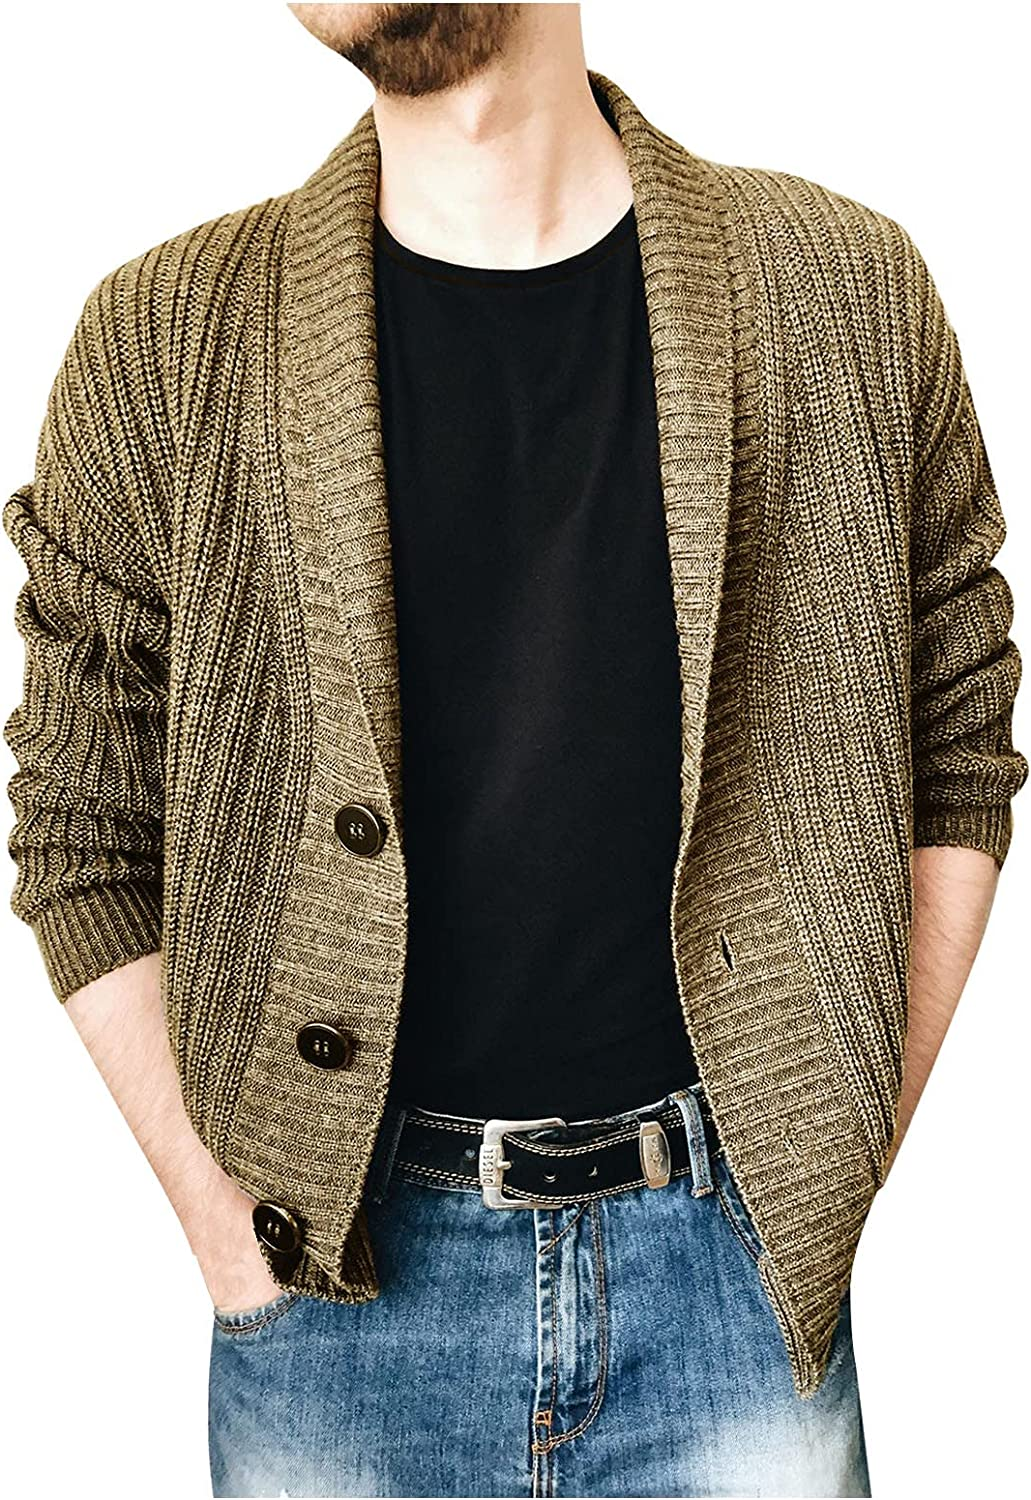 XXBR Knit Cardigan Sweater for Mens, Fall Winter Lapel Single-breasted Button Coat Open Front Casual Slim Outerwear